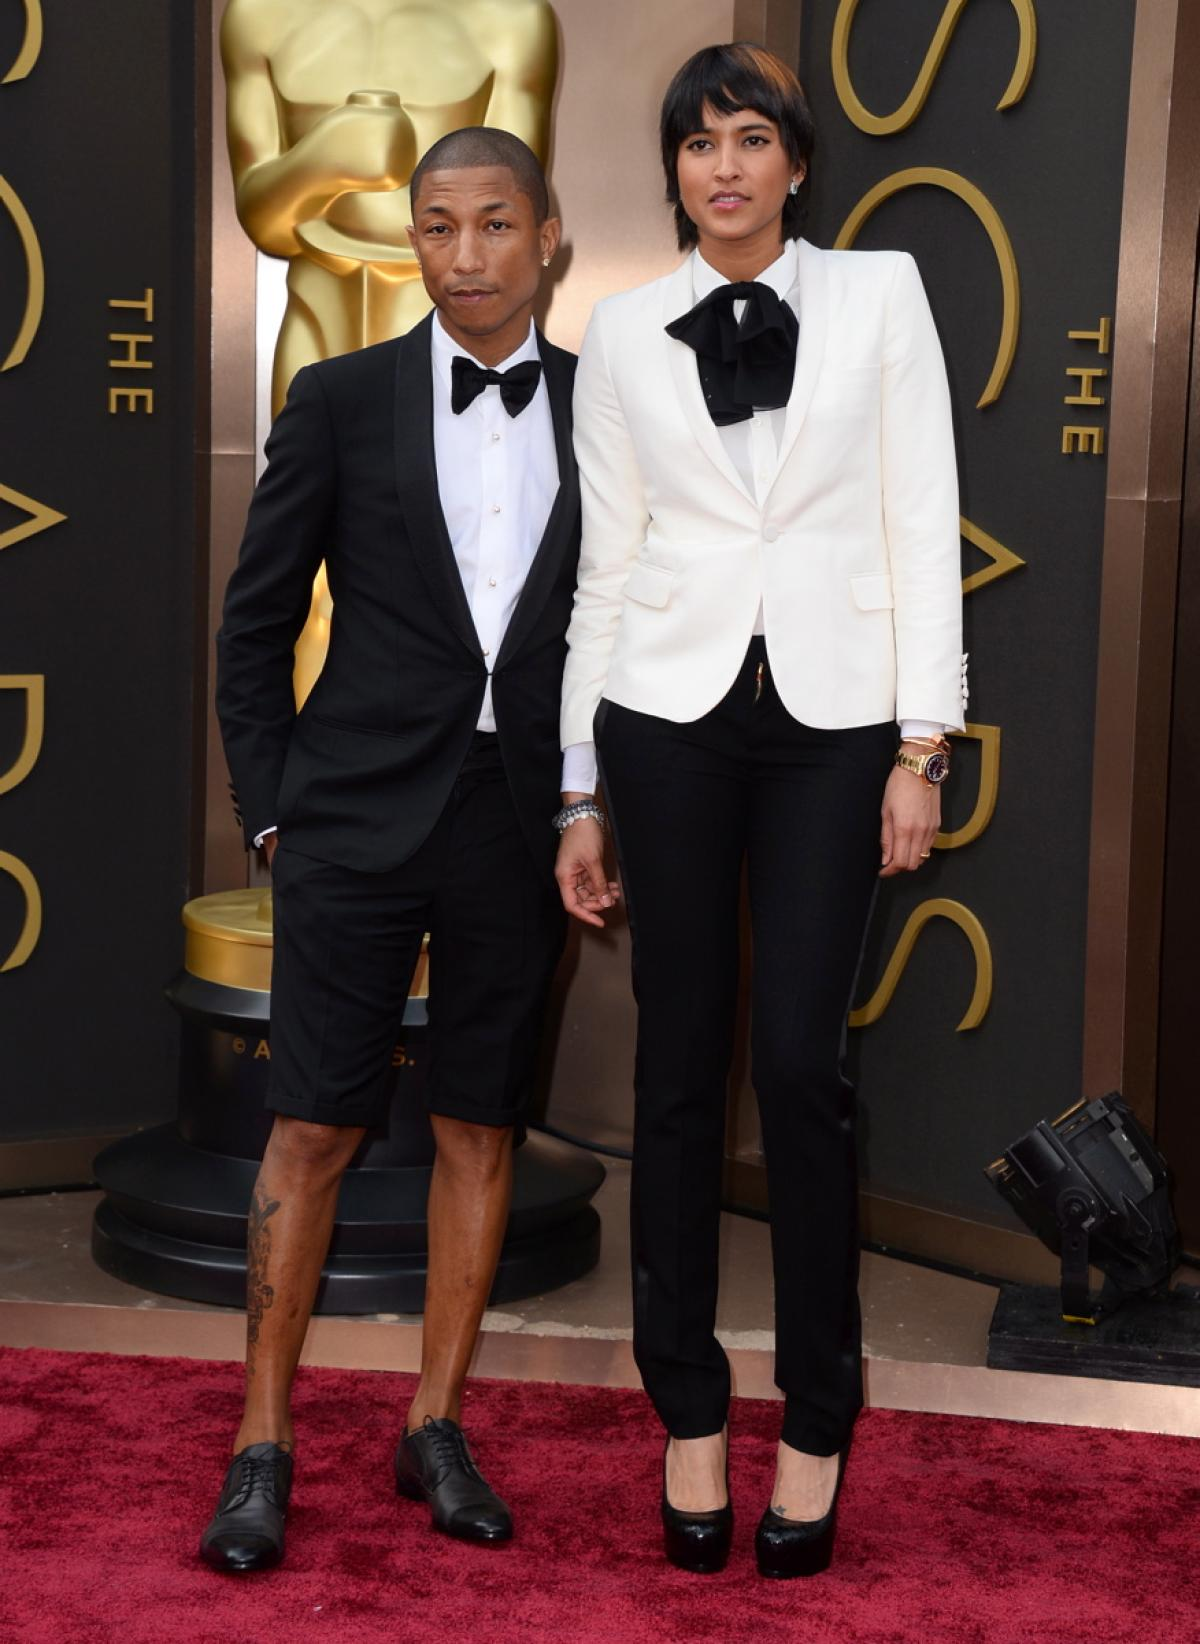 oscars-pharrell-williams-helen-lasichanh